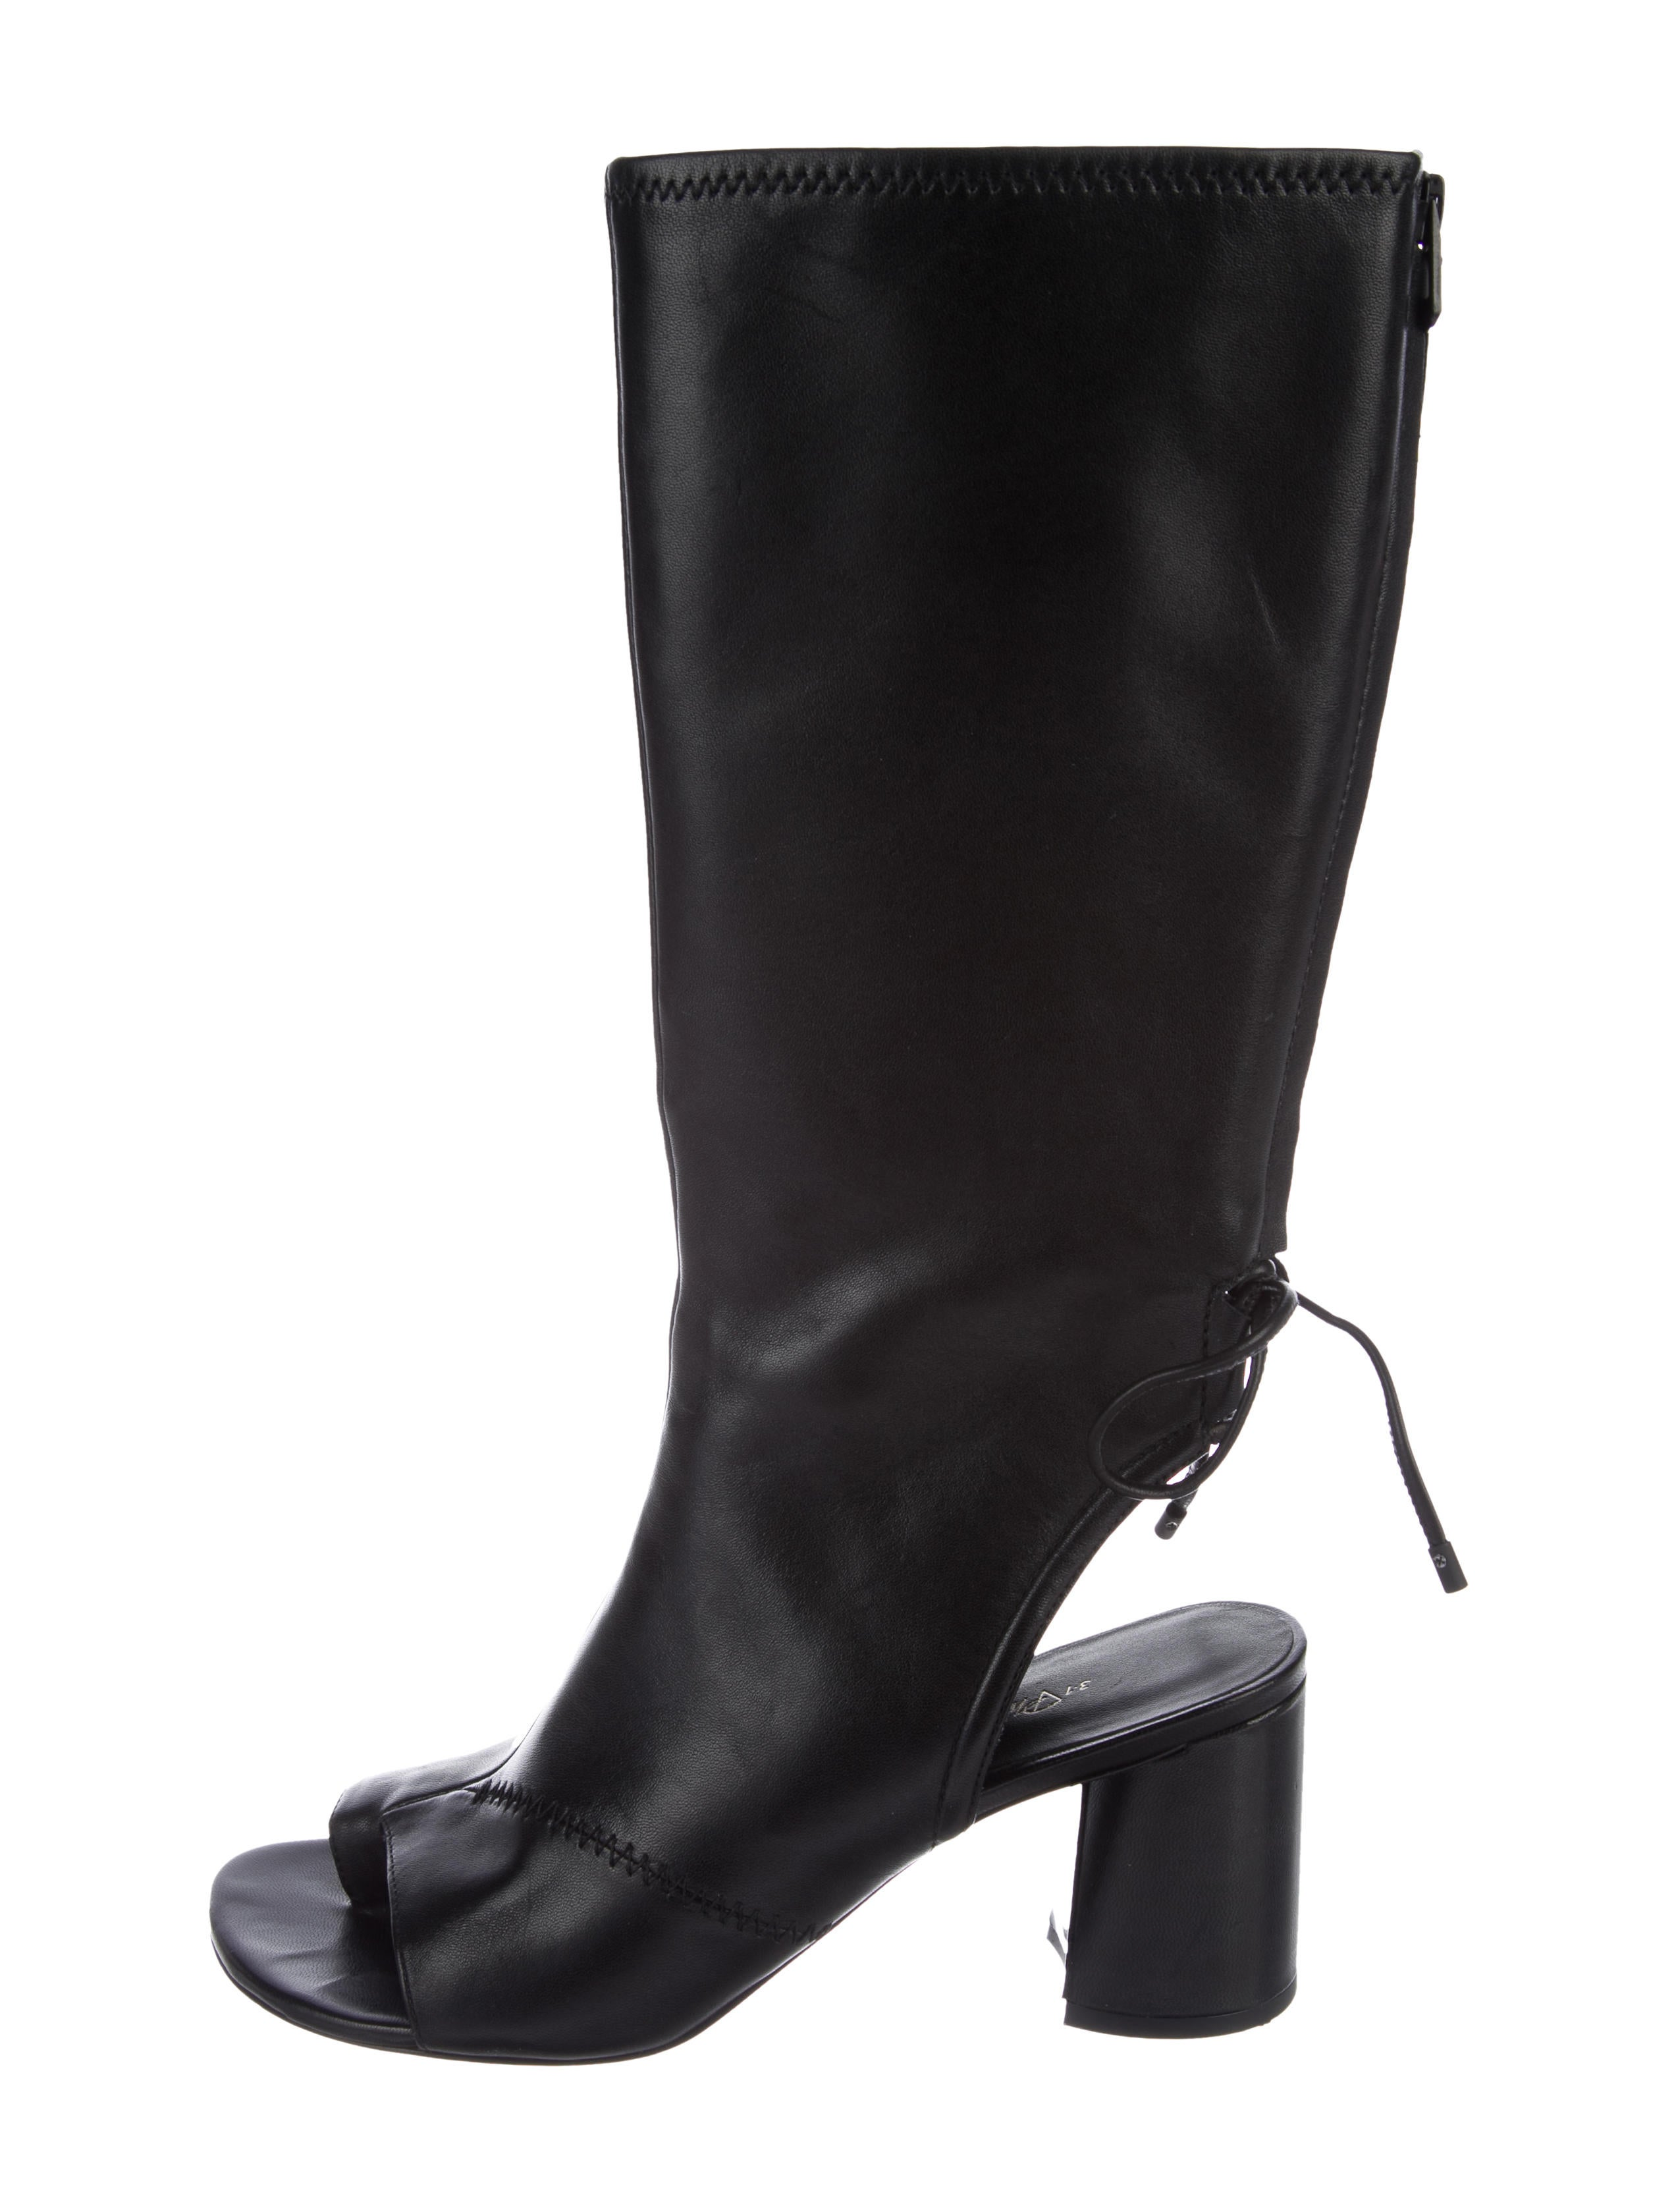 outlet huge surprise 3.1 Phillip Lim Leather Cutout Mid-Calf Boots cheap price original KoKWvxzRUU